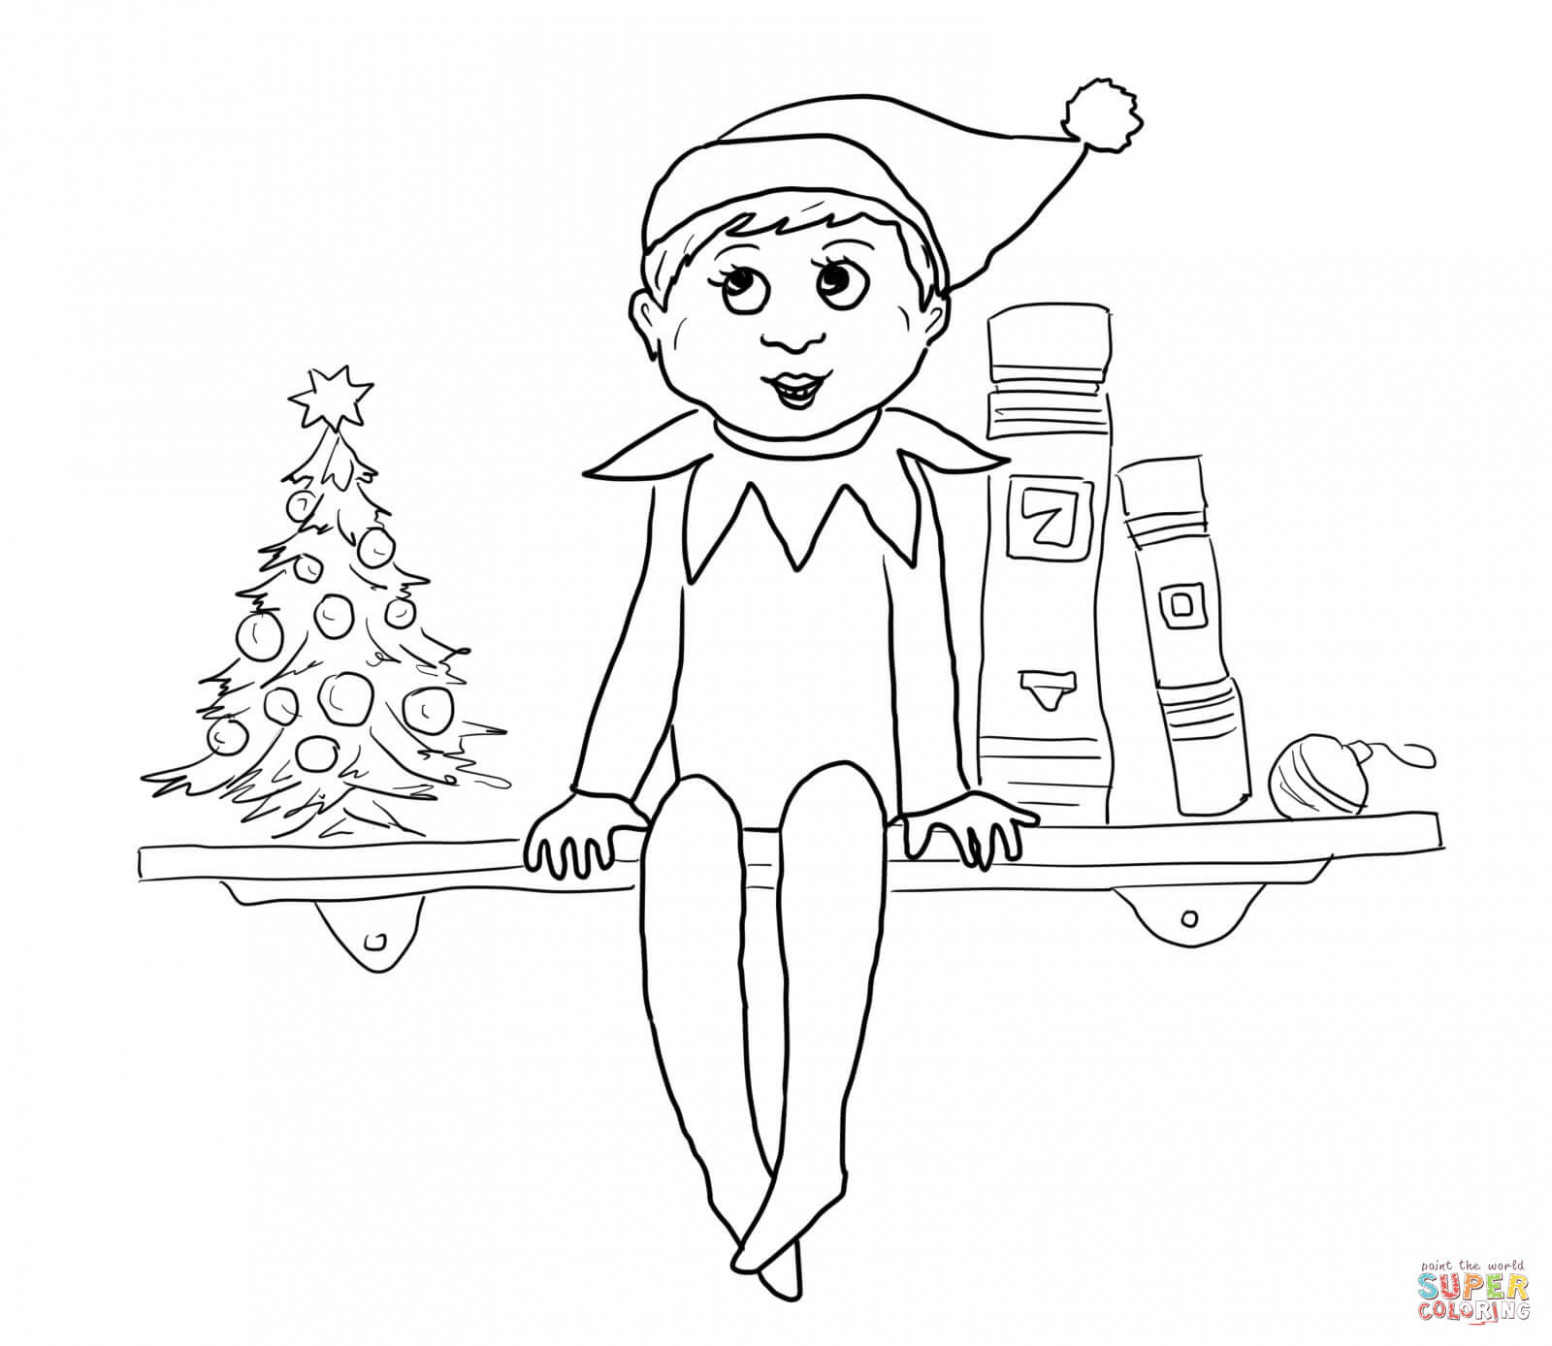 Elf on the Shelf coloring pages | Free Coloring Pages – Christmas Coloring Sheets Elf